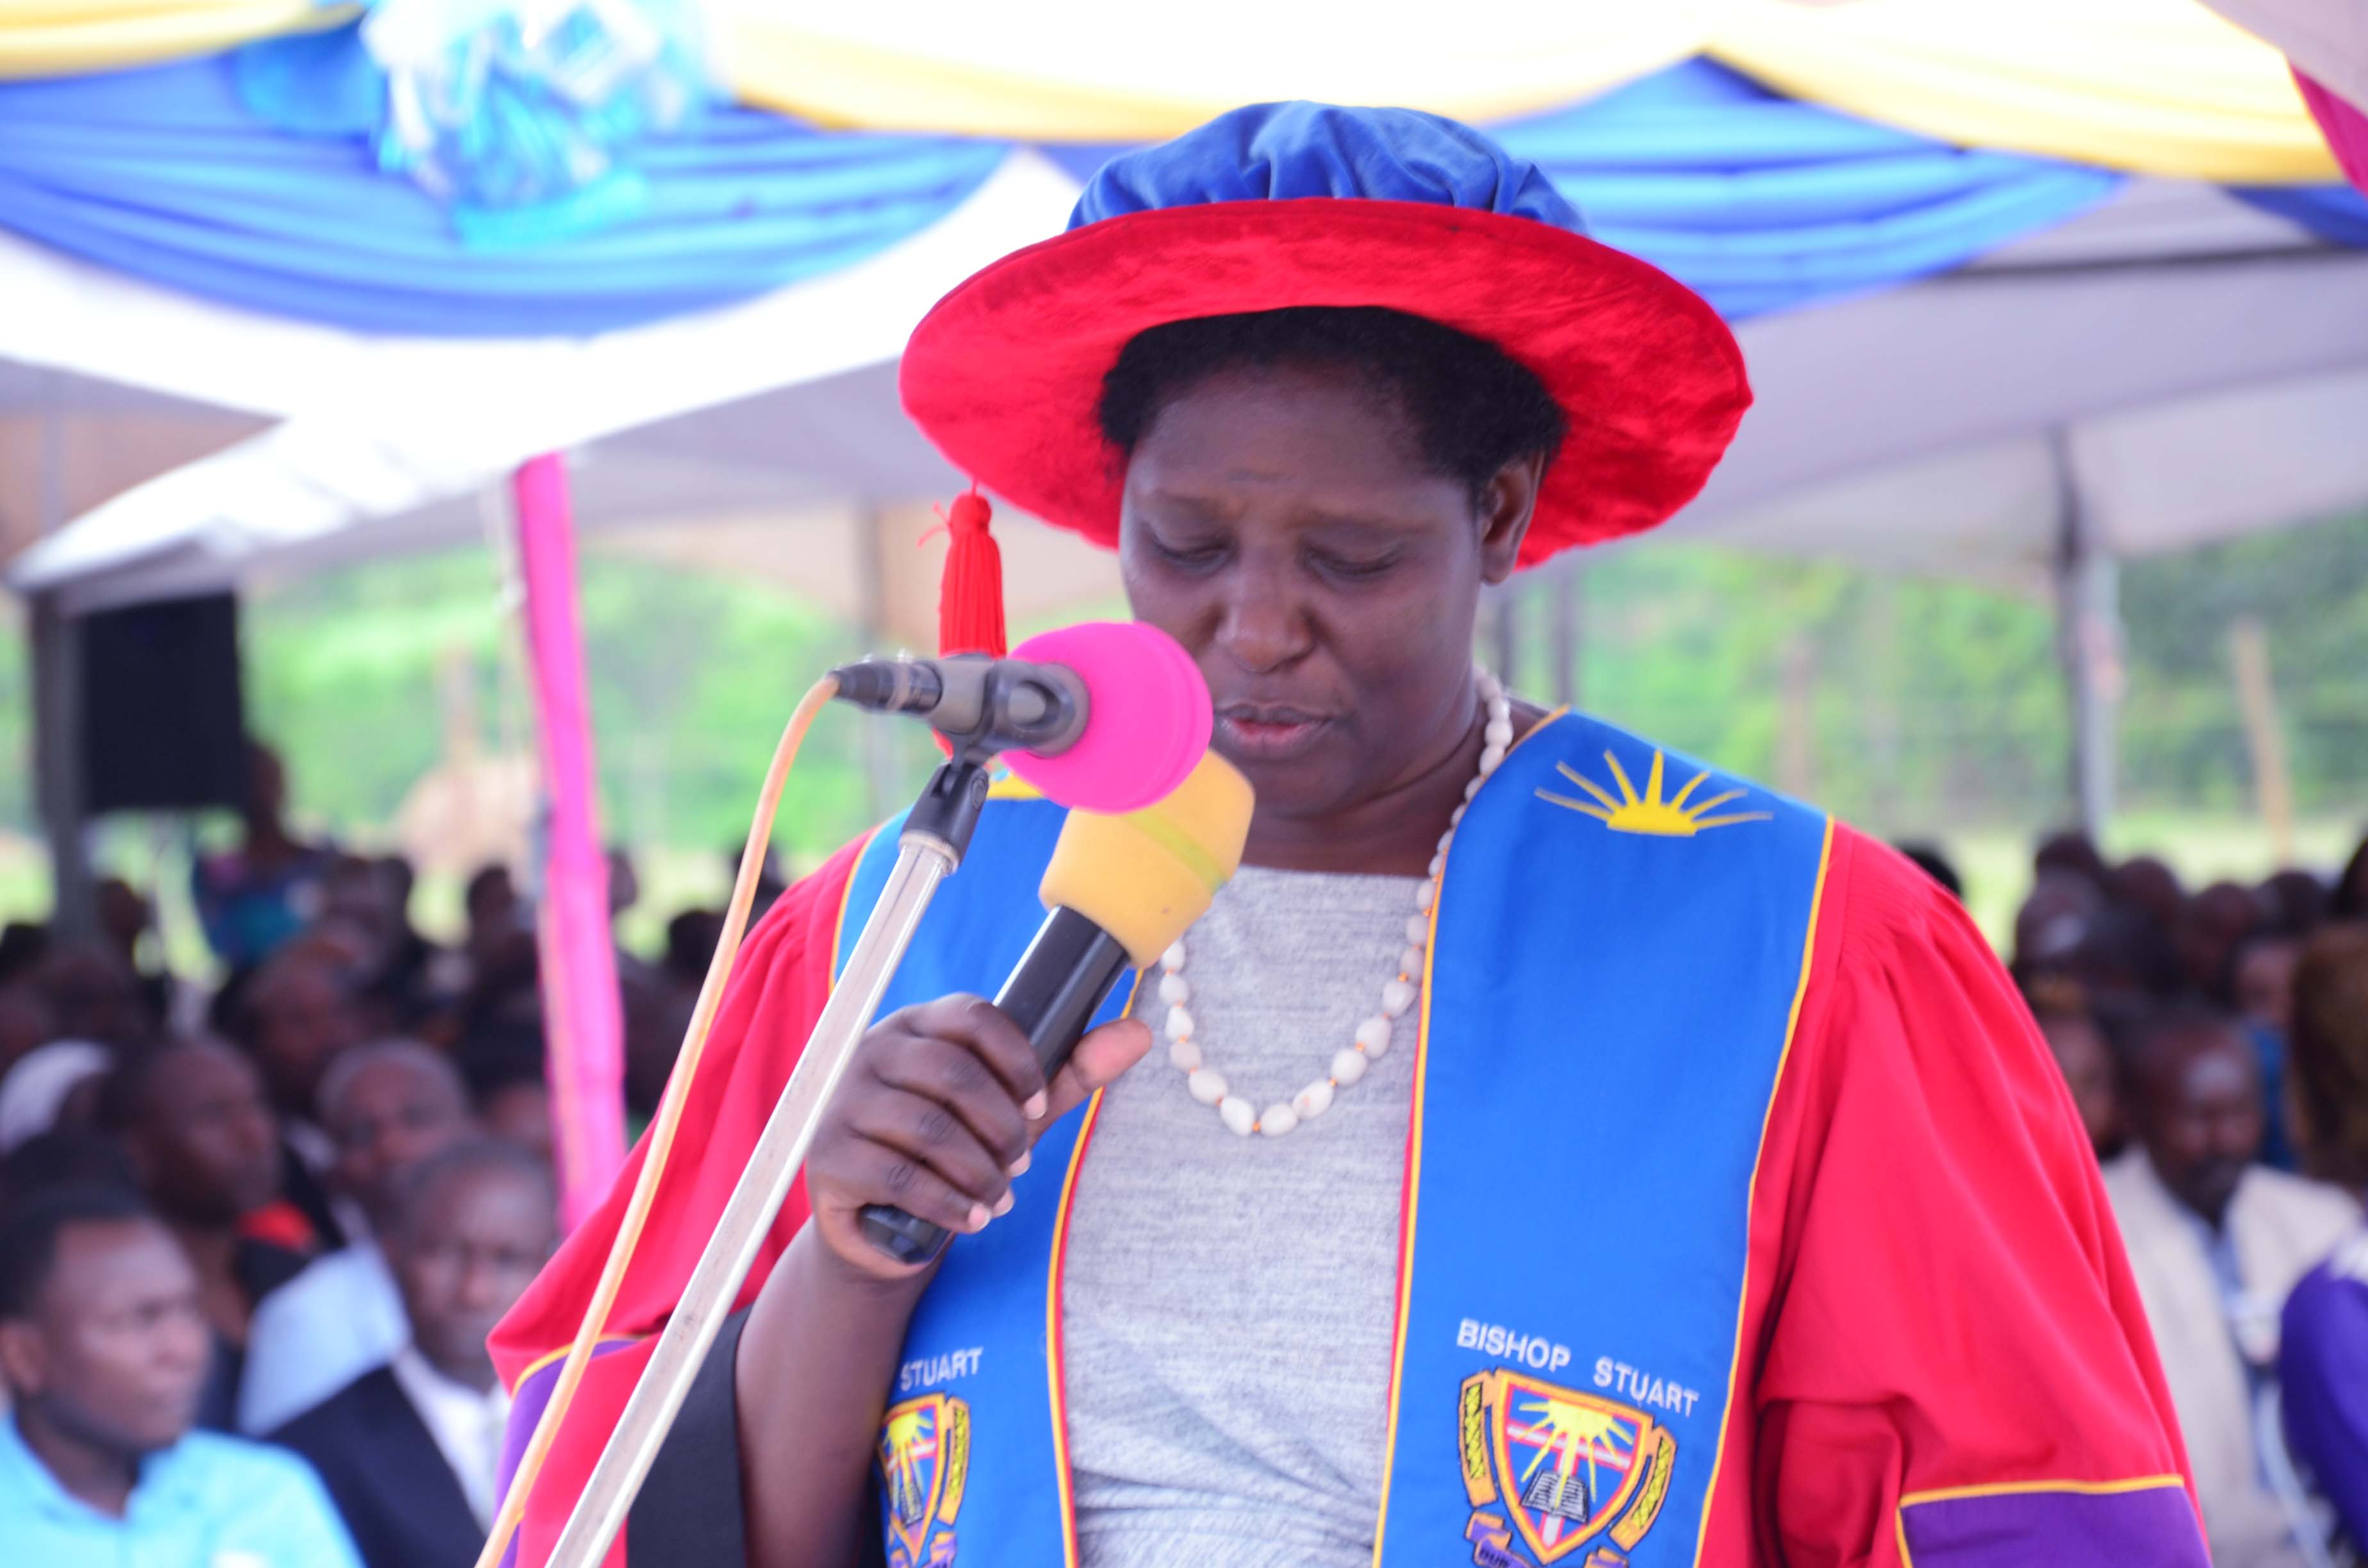 The Vice-Chancellor's speech on the 15th Graduation Ceremony